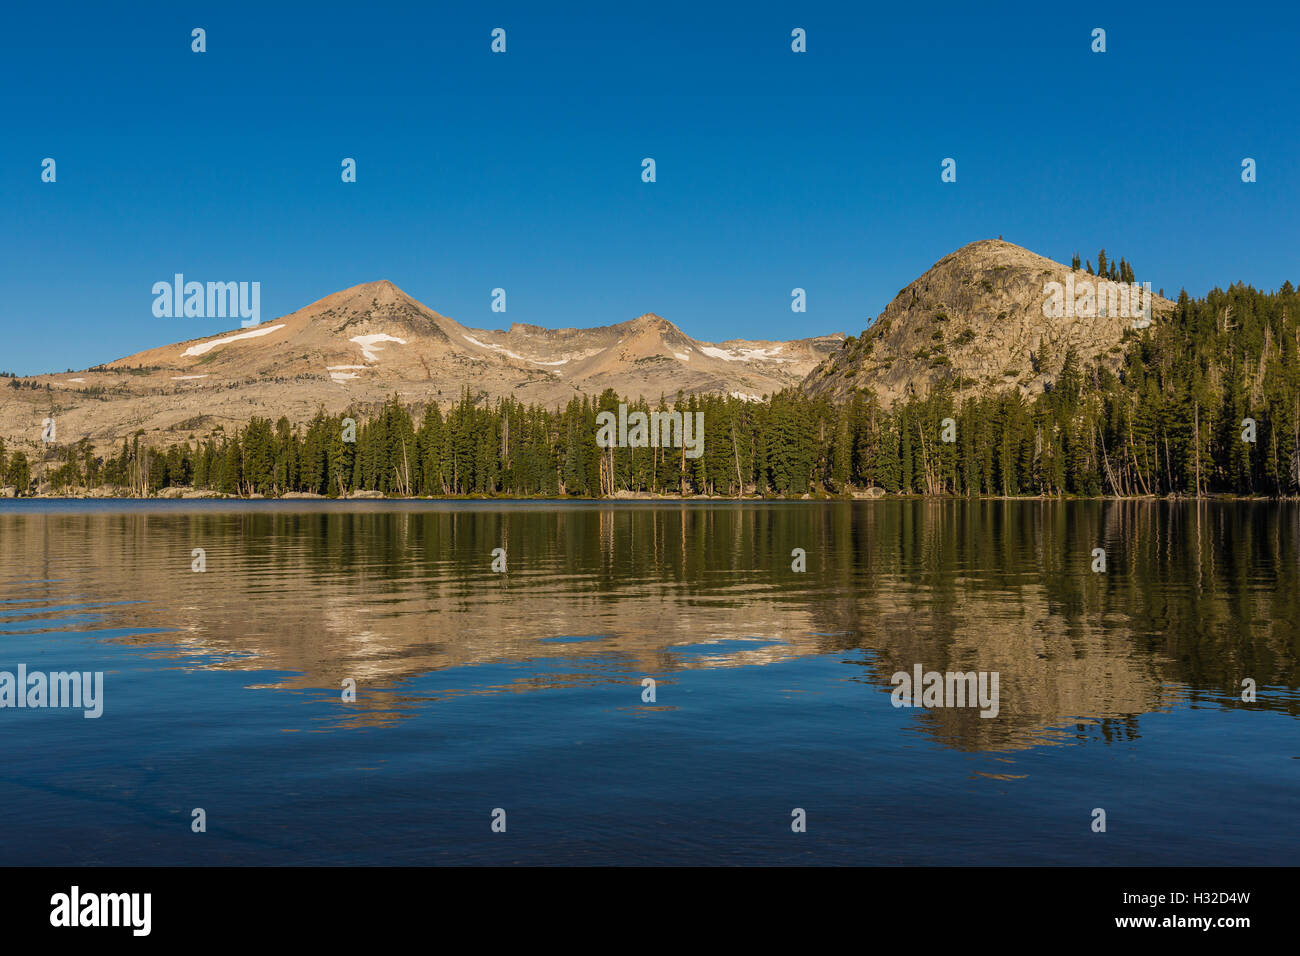 Pyramid Peak viewed from Lake of the Woods in the Desolation Wilderness, Eldorado National Forest, California, USA - Stock Image